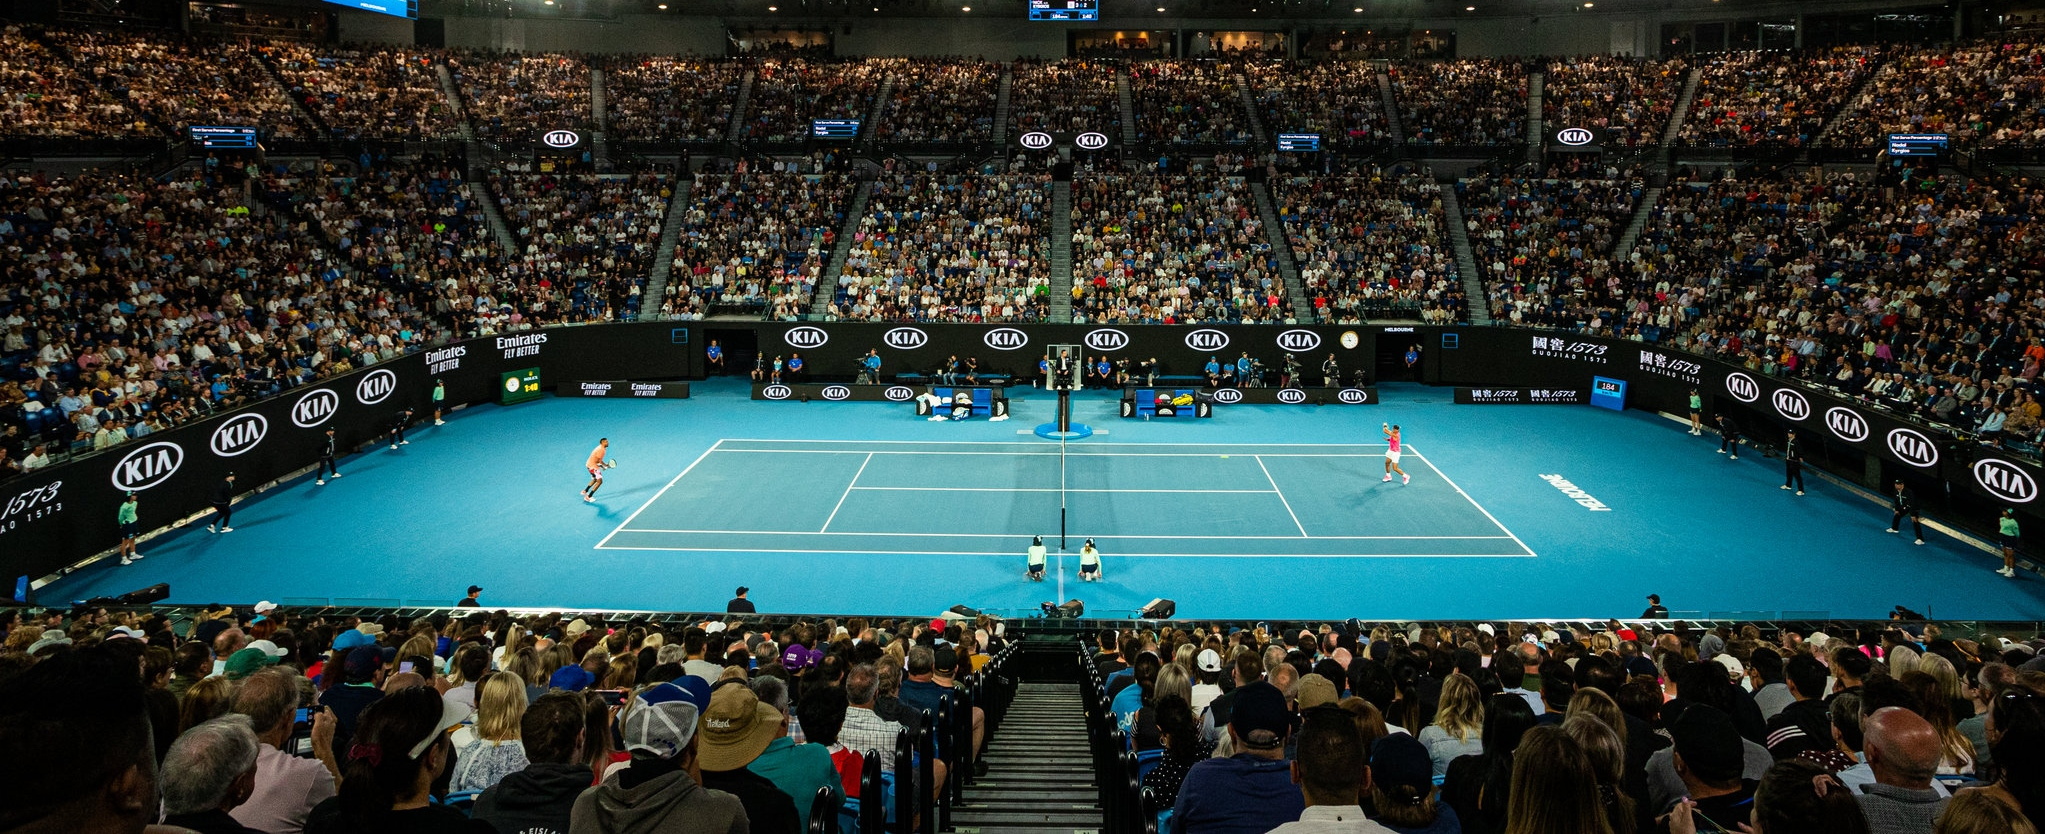 Tennis betting | The best tournaments to bet on